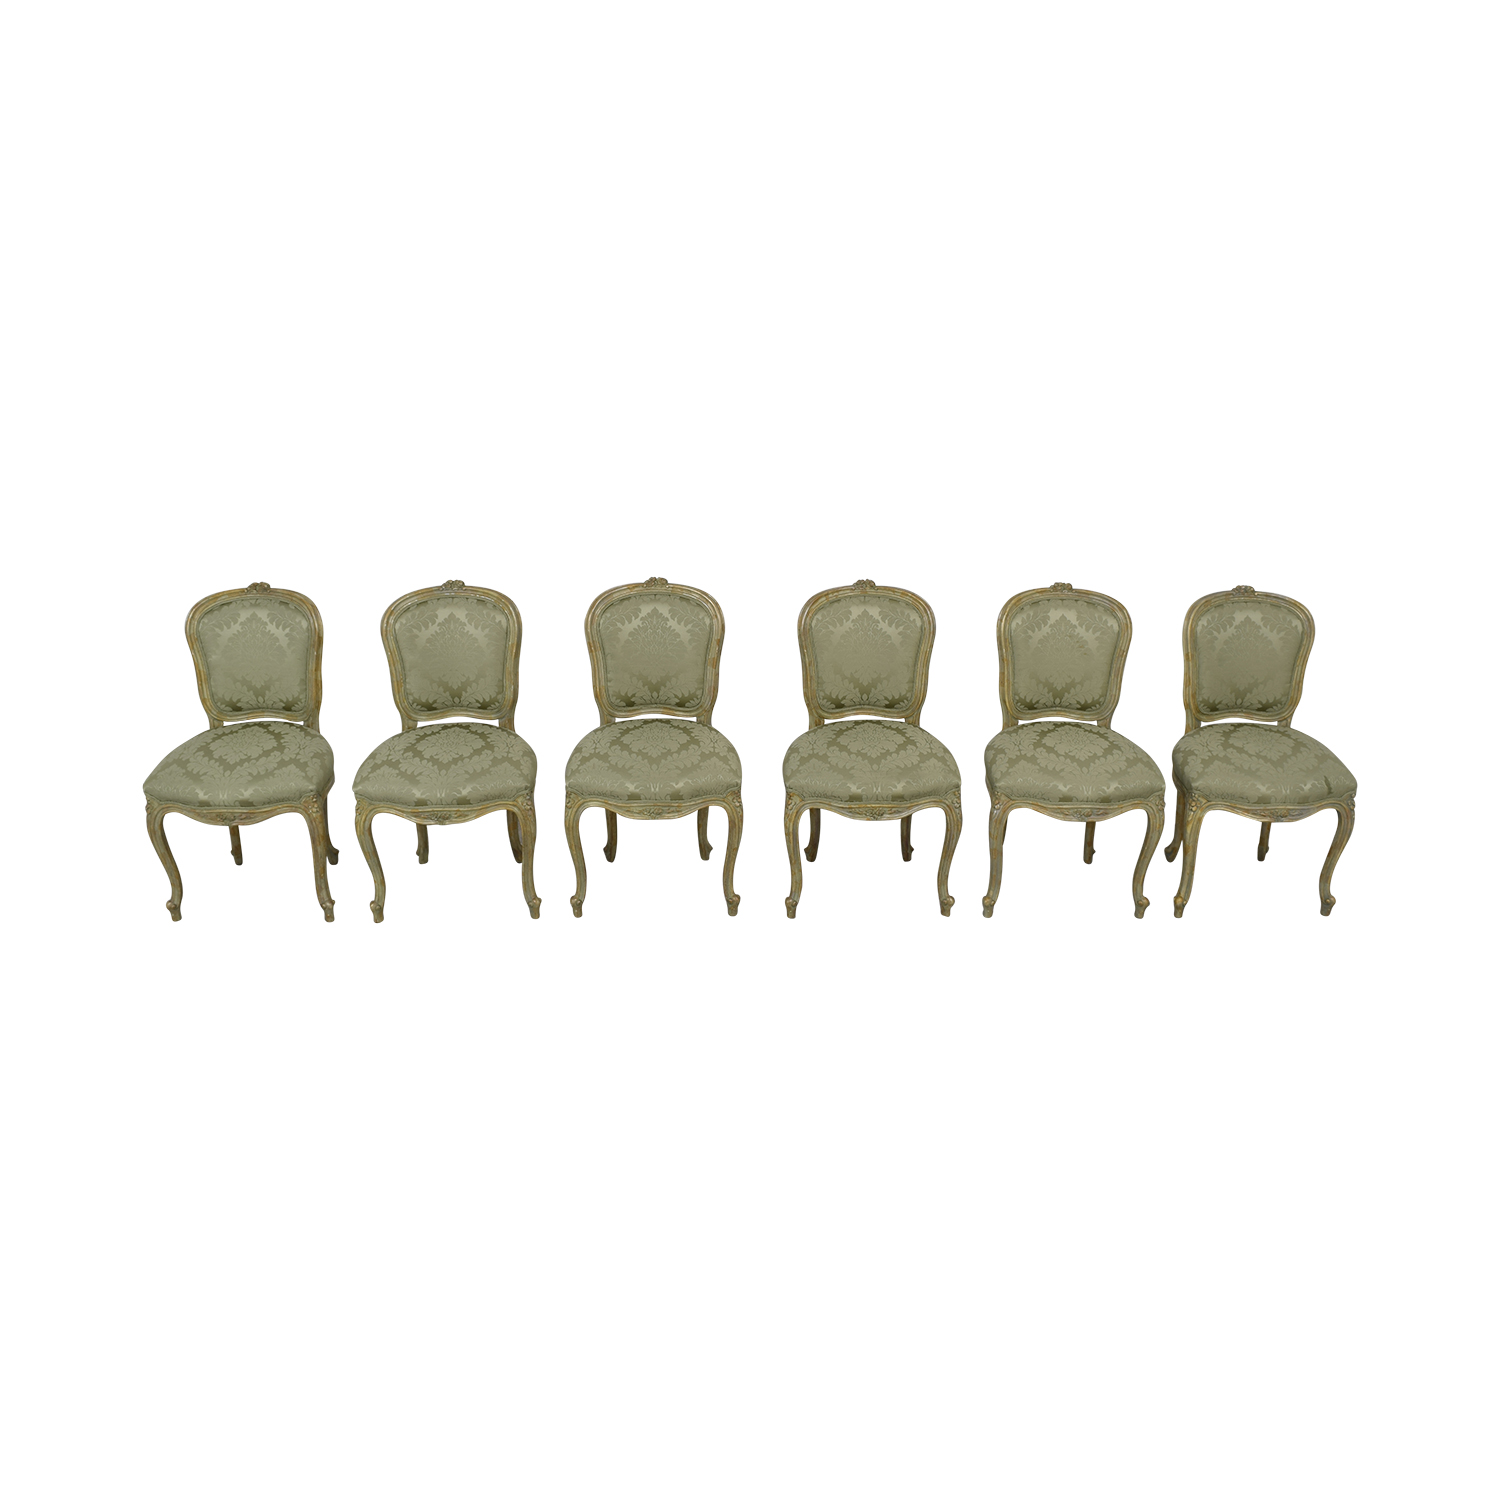 Excellent 90 Off Devon Shops Devon Shop French Celery Damask Upholstered Dining Chairs Chairs Ibusinesslaw Wood Chair Design Ideas Ibusinesslaworg